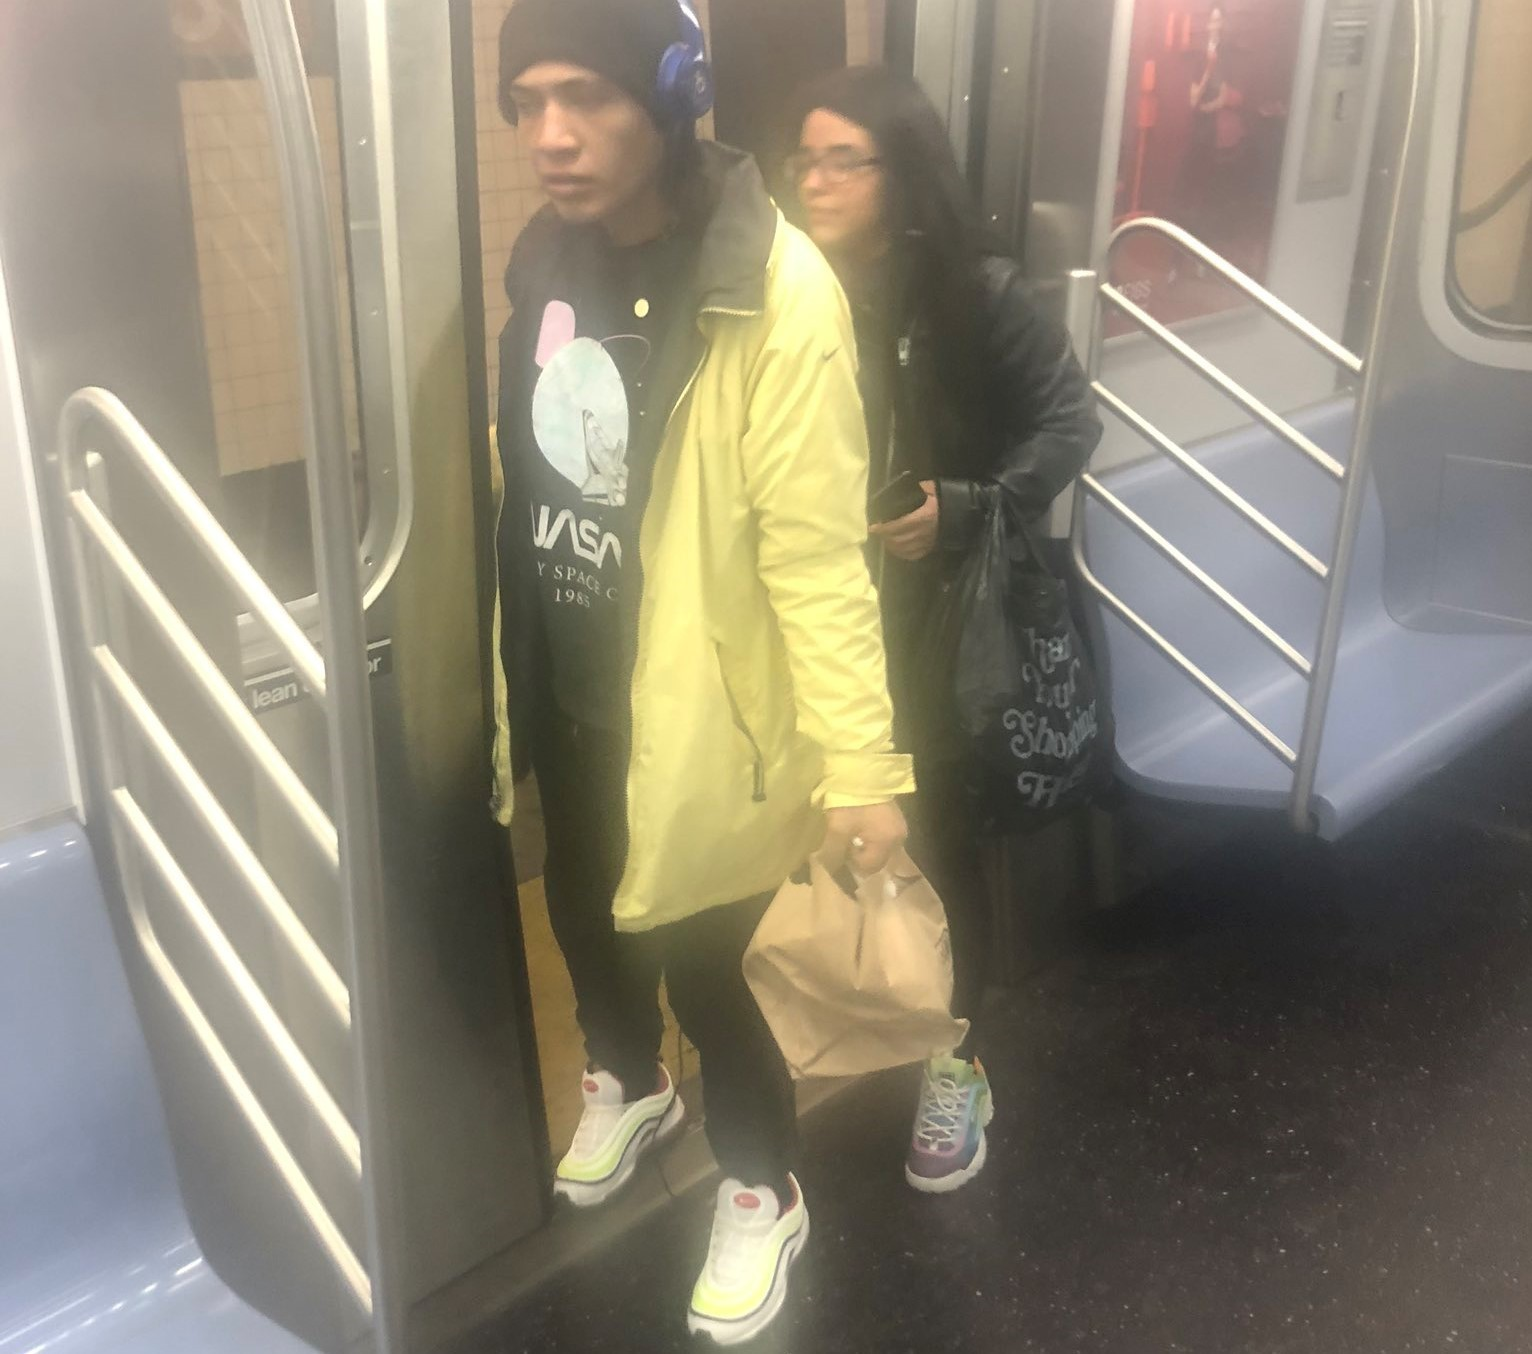 Bust in NYC subway hate attack against transgender woman